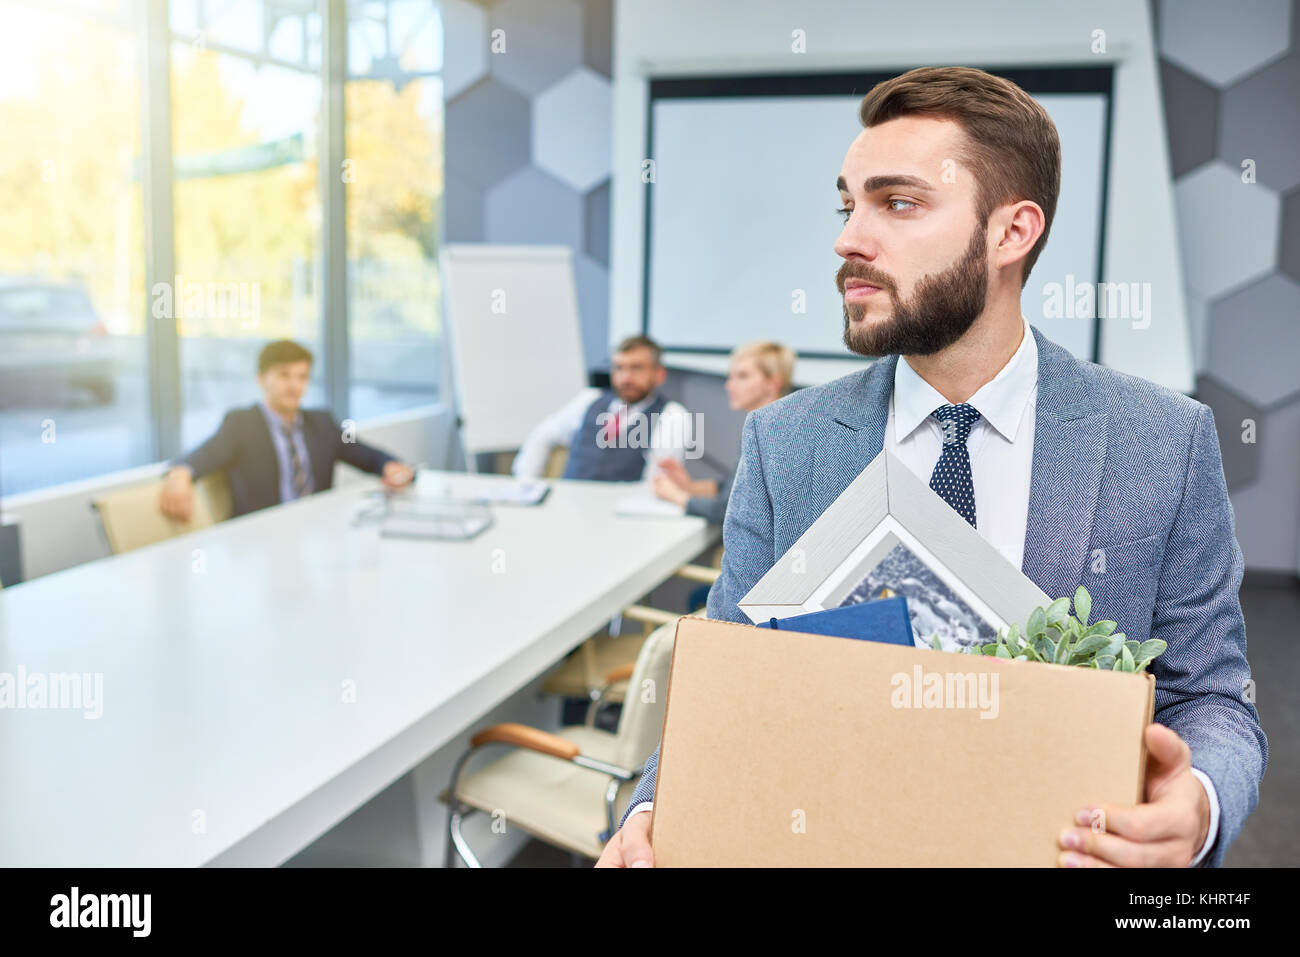 Portrait of sad bearded businessman holding box of personal belongings being fired from work, copy space - Stock Image